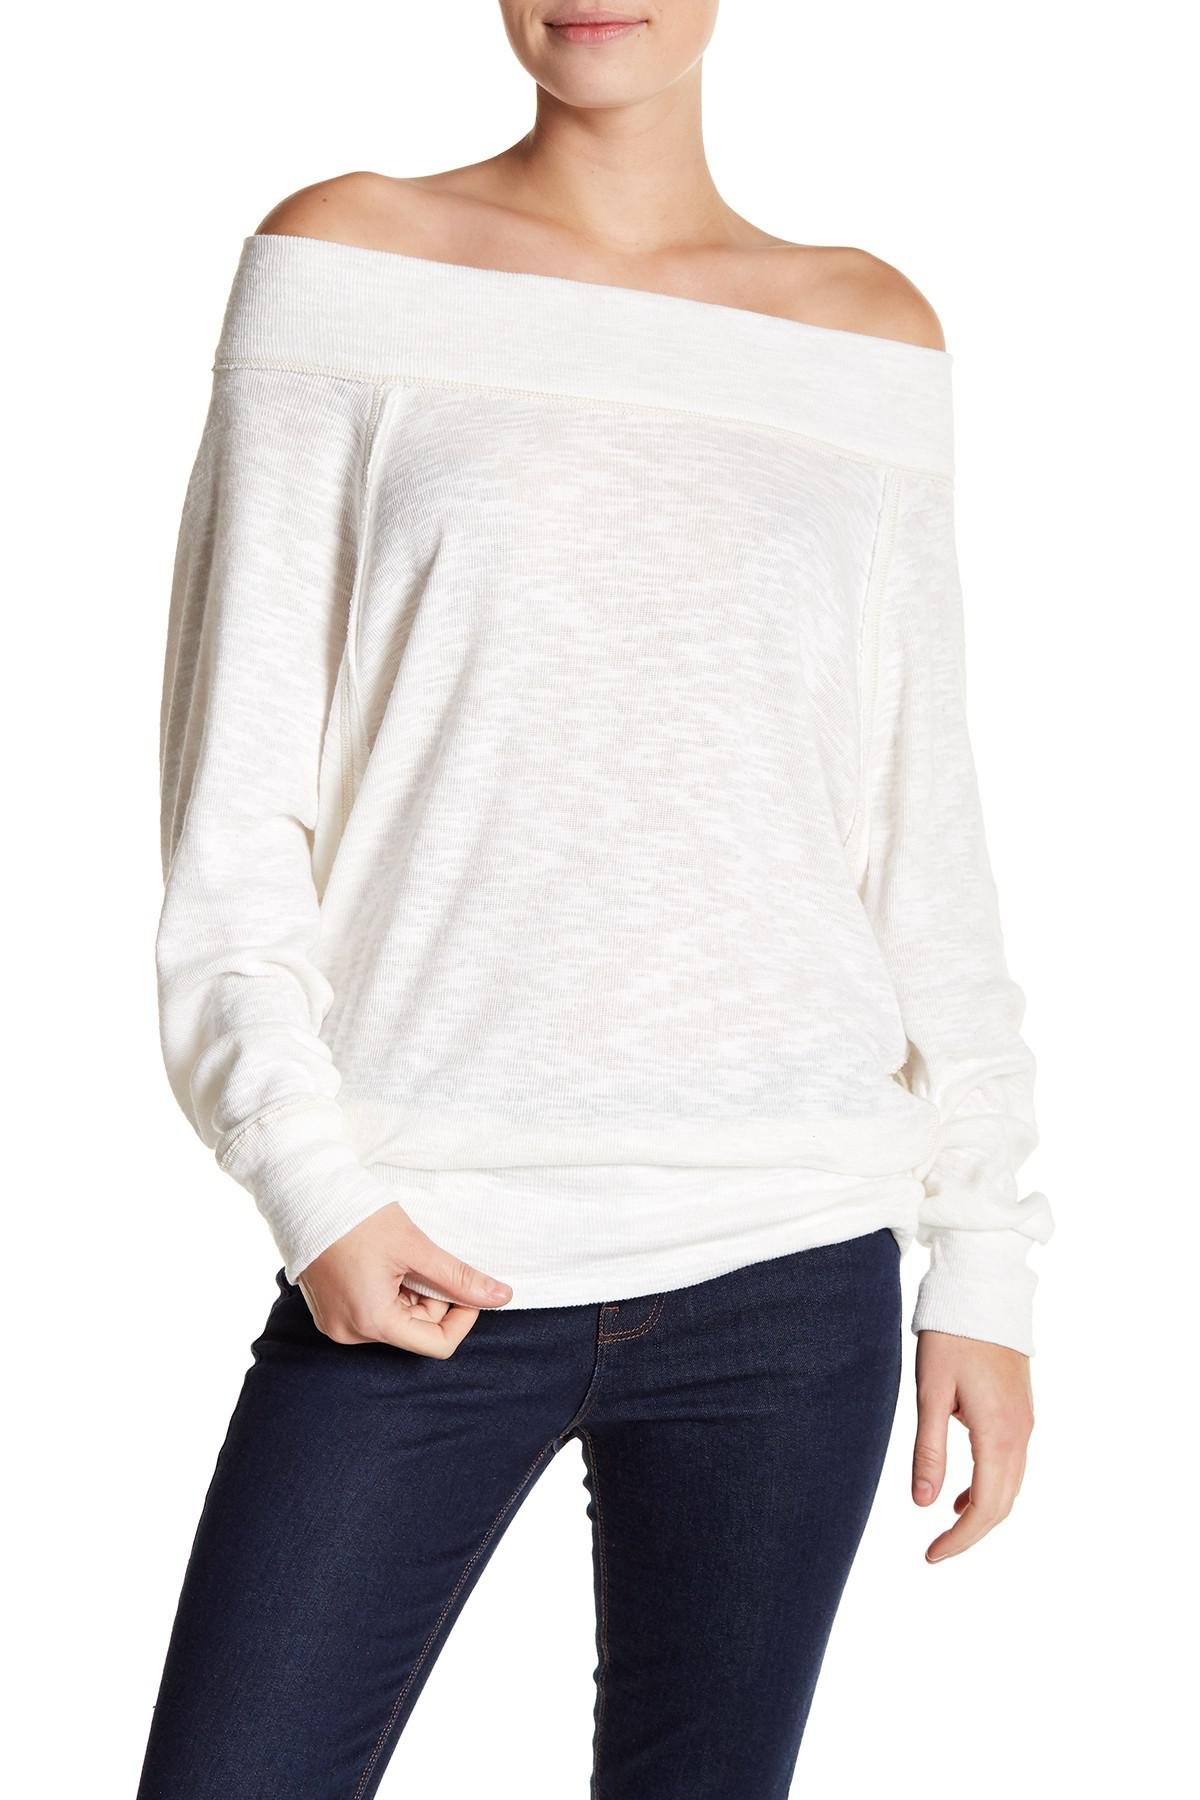 46f04498a7cfab Lyst - Free People Palisades Off The Shoulder Top in White